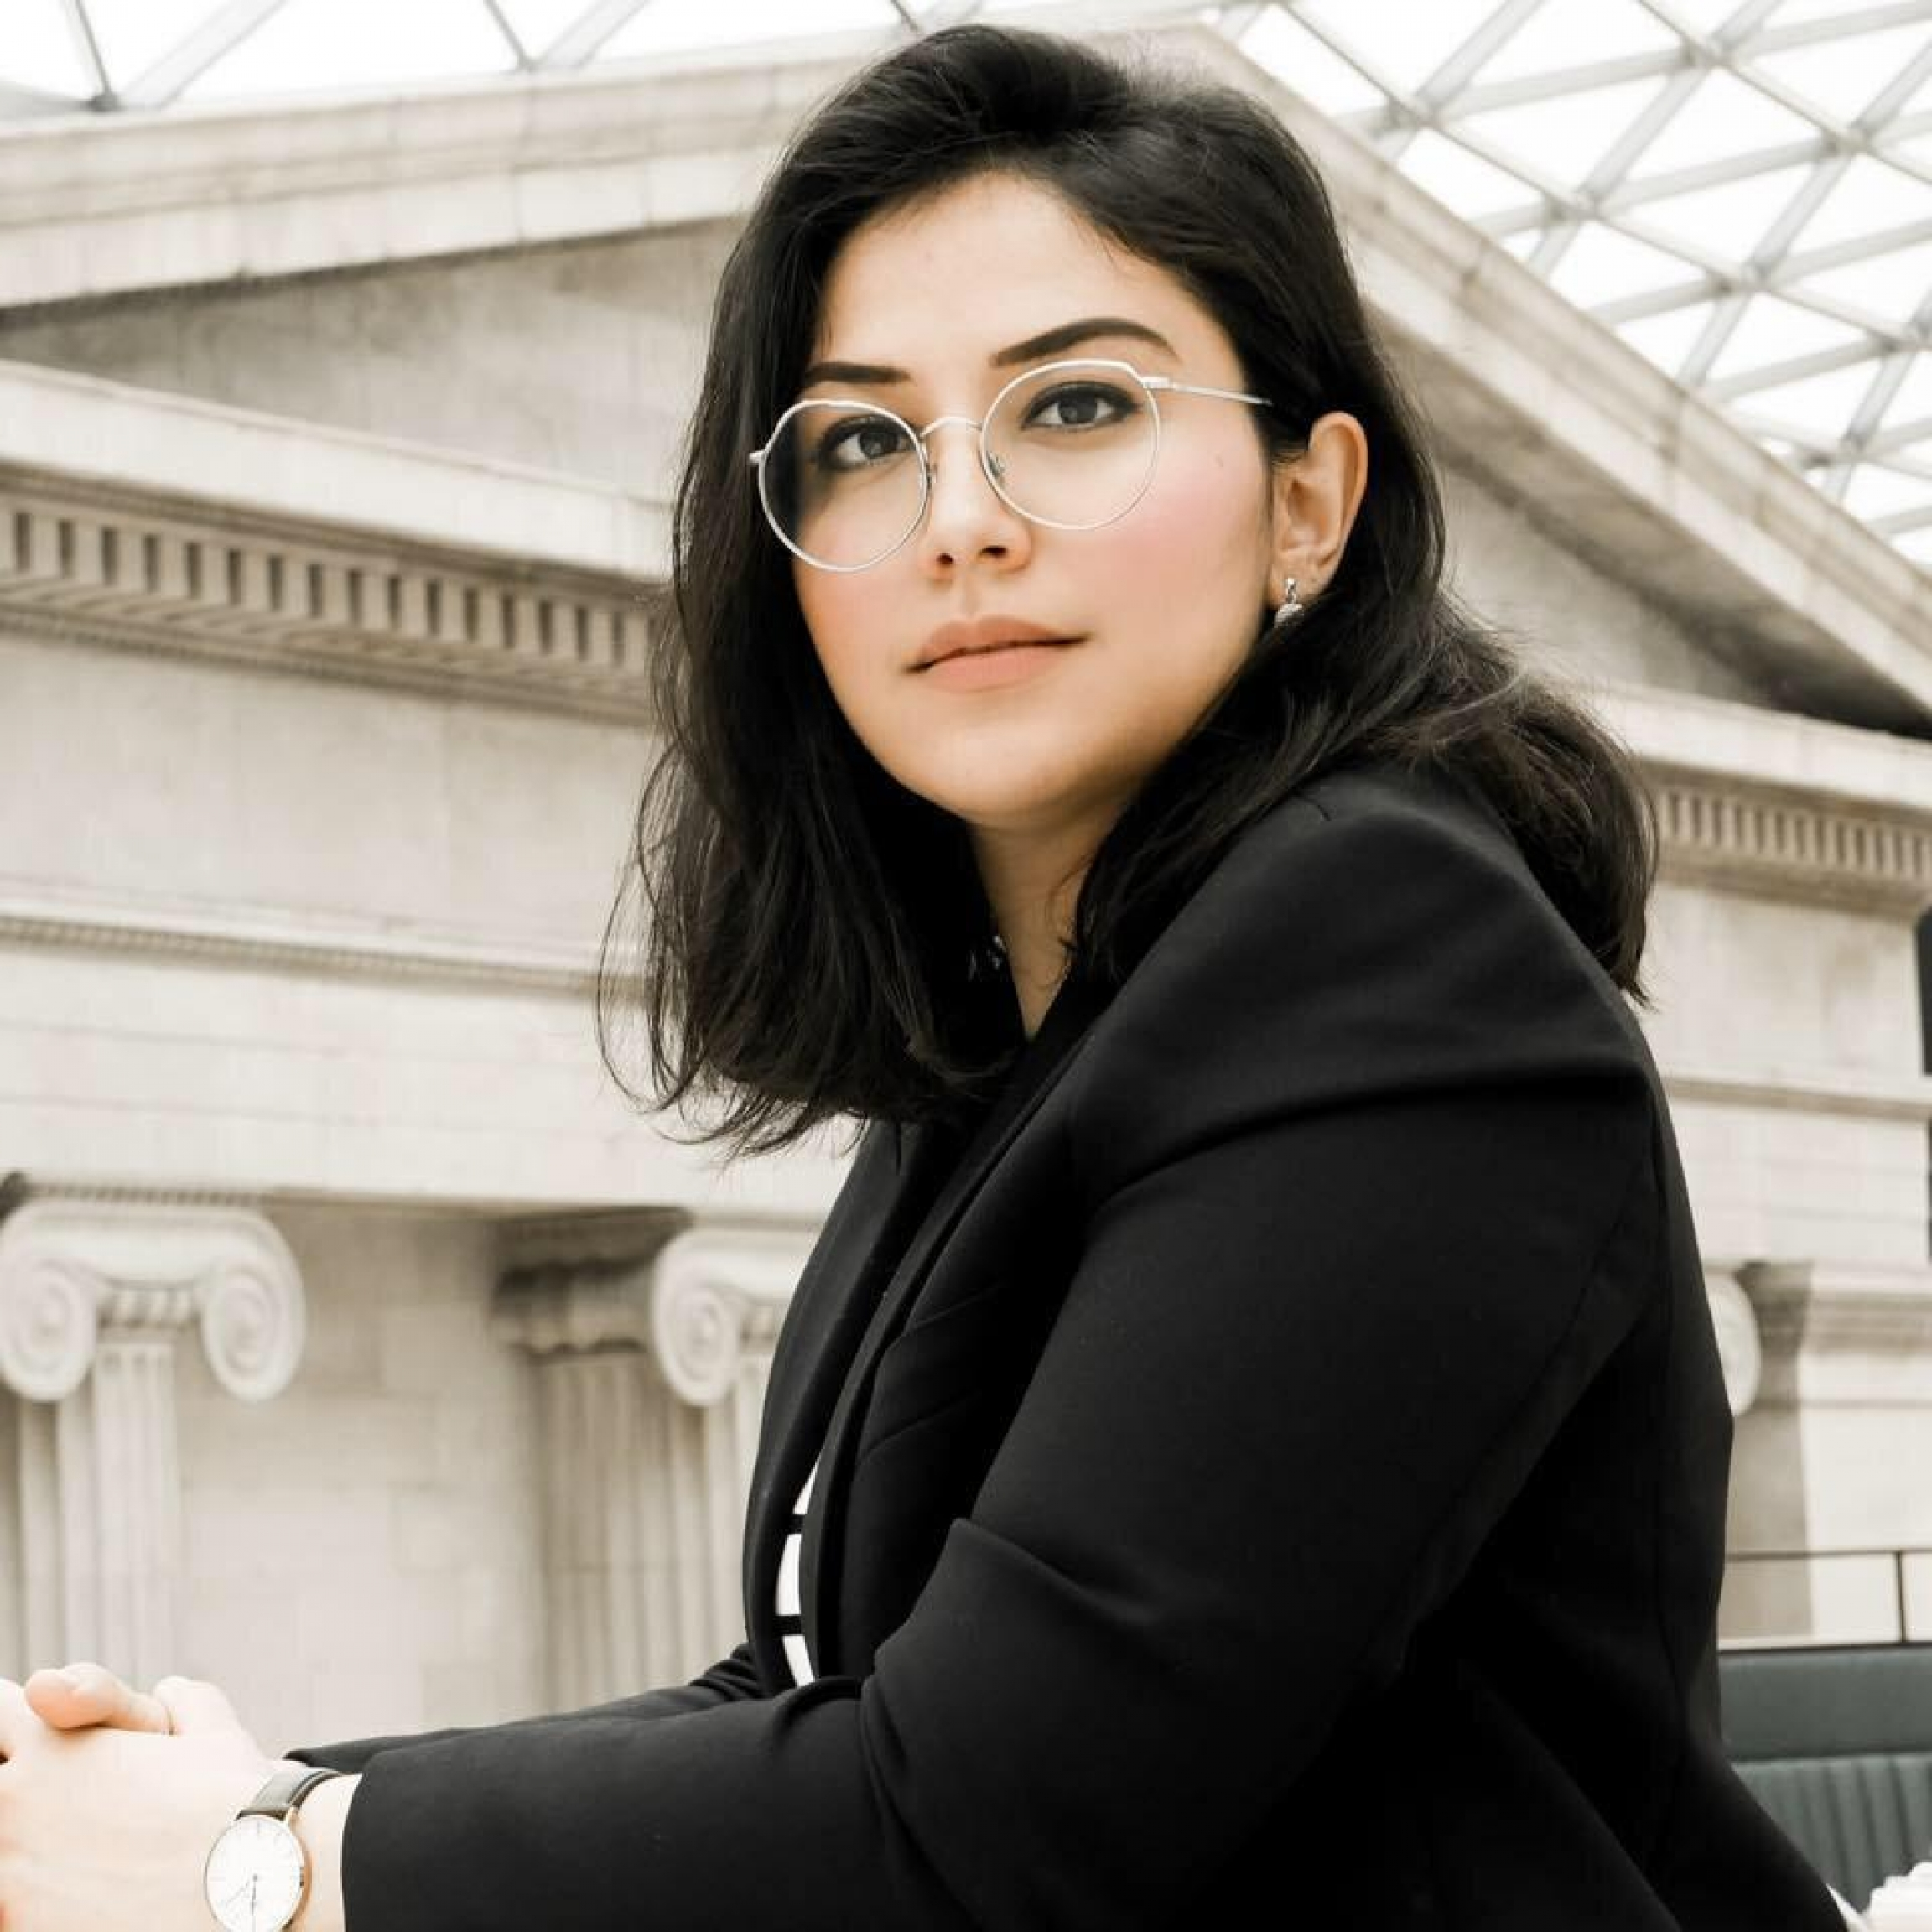 Shabnam Nasimi,director of the London-based lobby group Conservative Friends of Afghanistan, says that despite being a supporter of the UK prime minister and Brexit, she takes issue with the government's refugee policy.